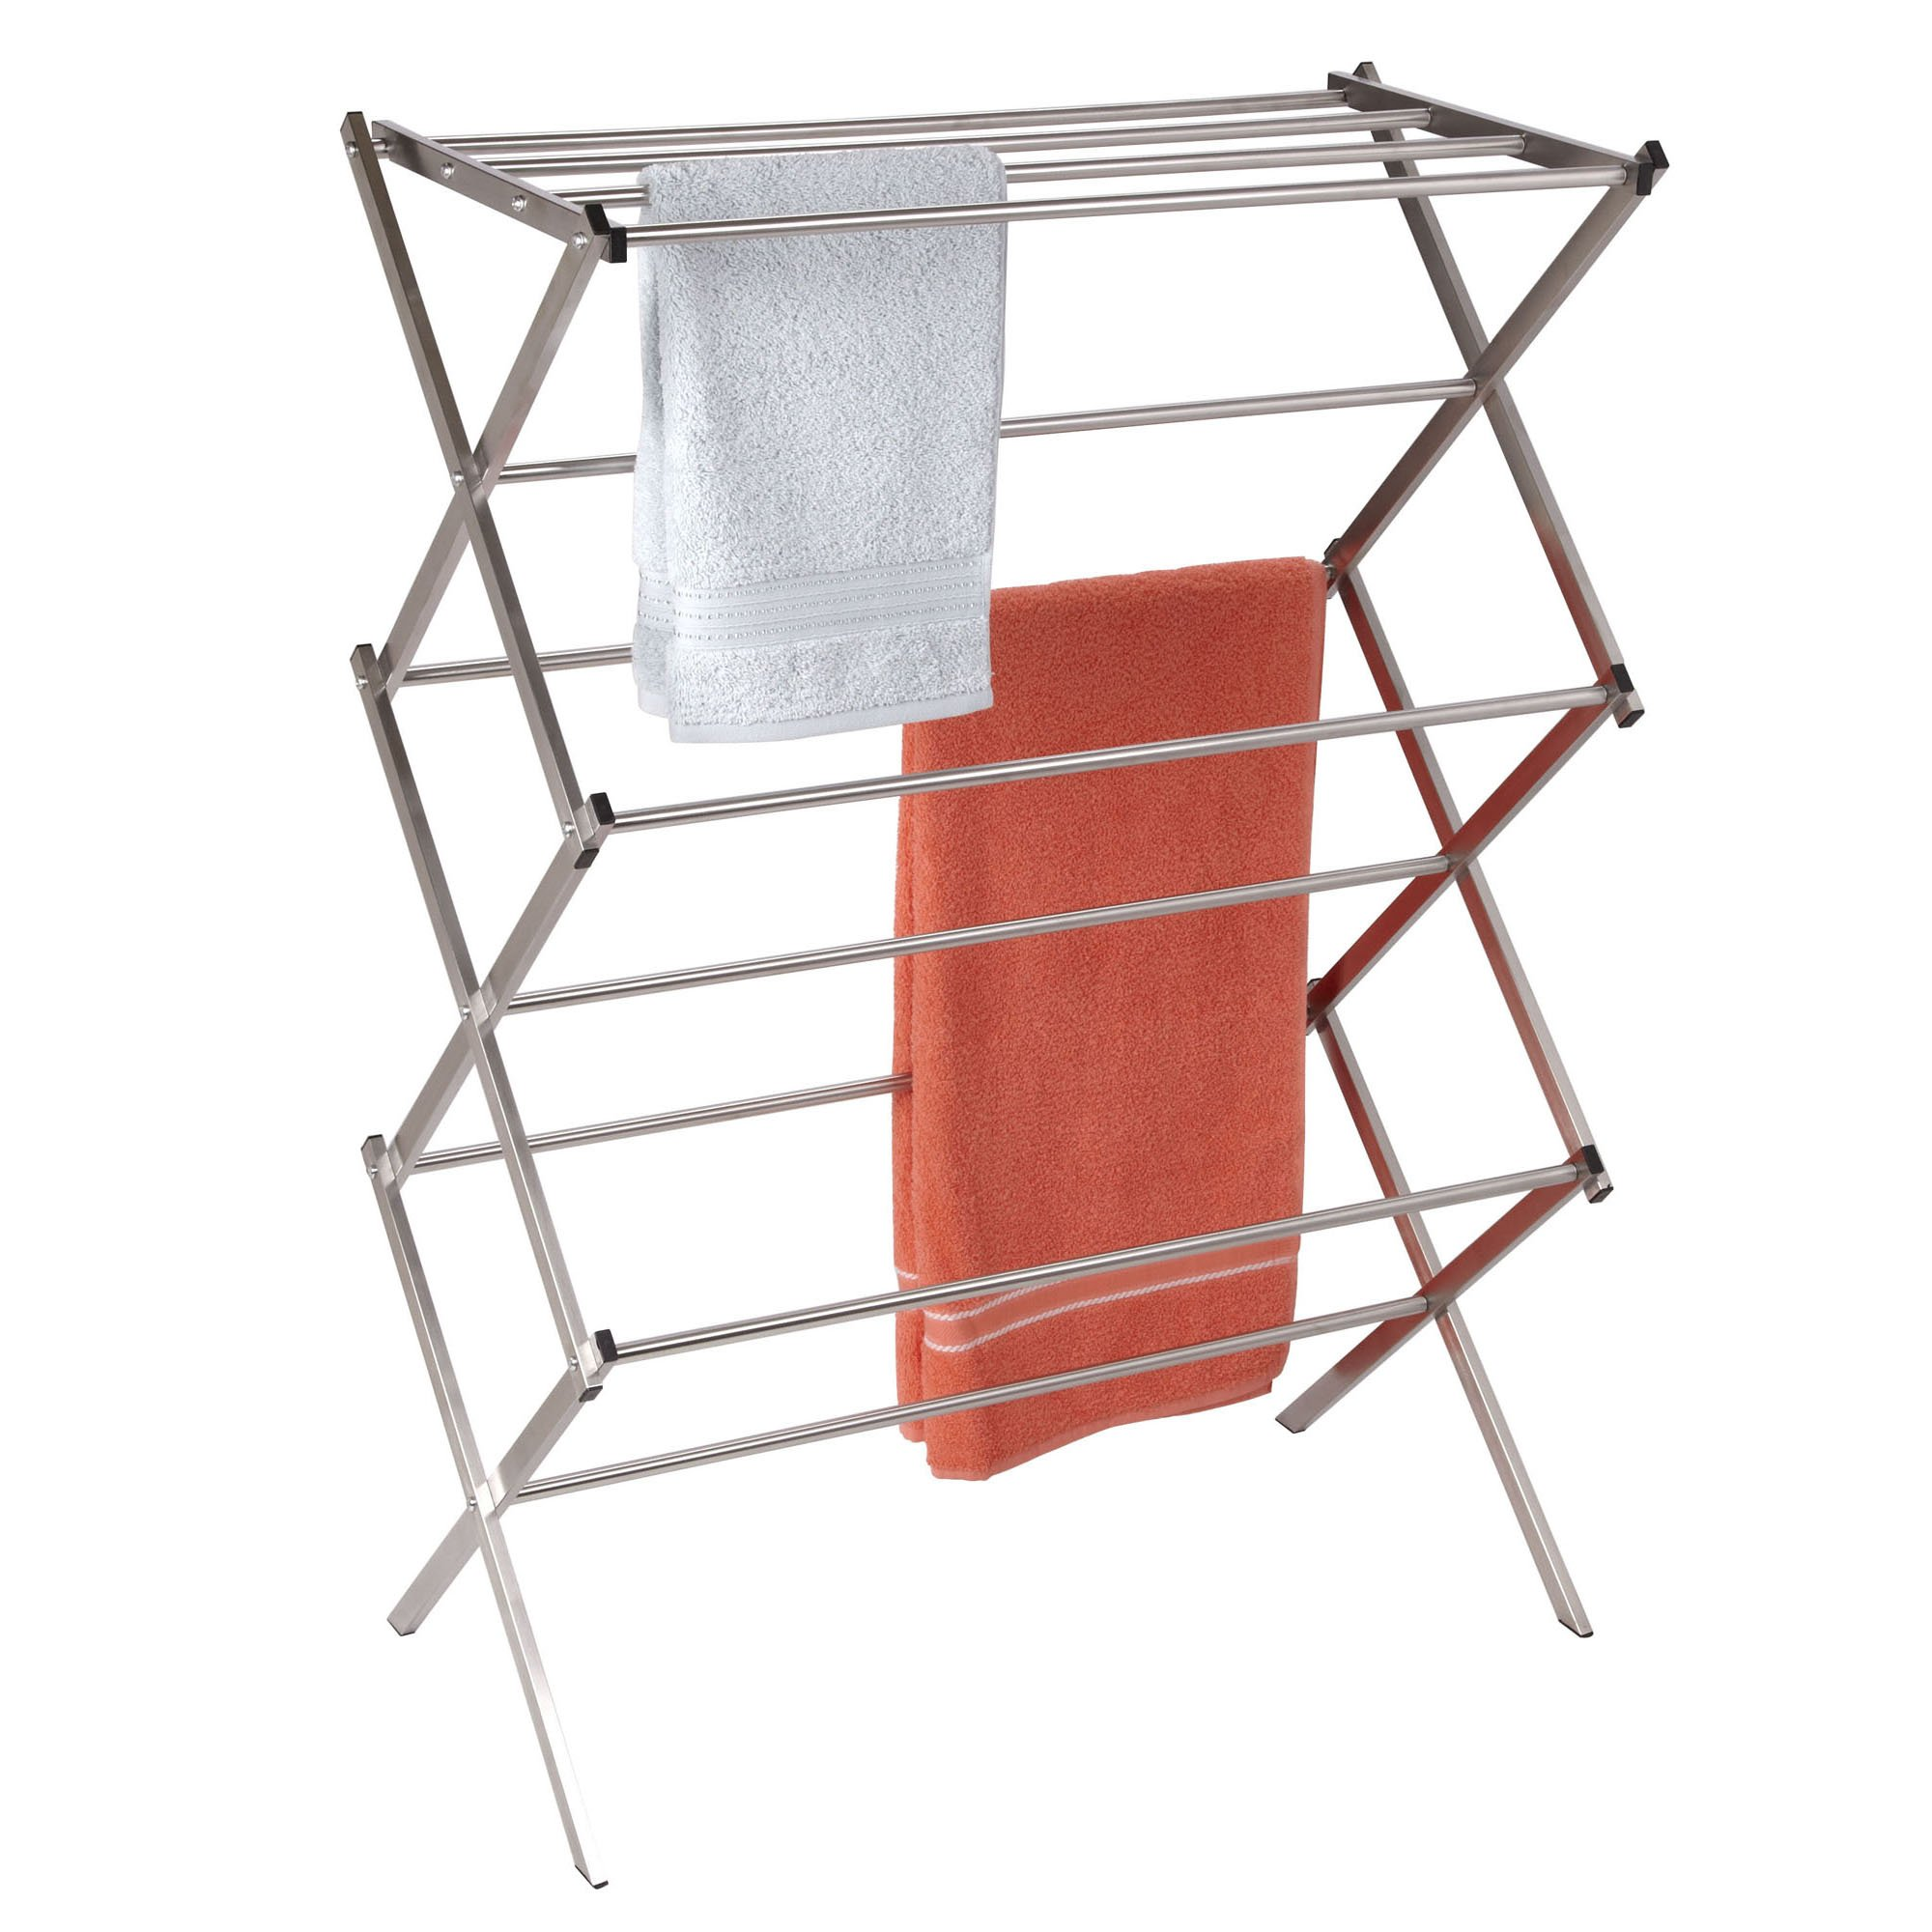 Household Essentials Folding X-Frame Clothes Dryer, Stainless Steel by Household Essentials (Image #2)